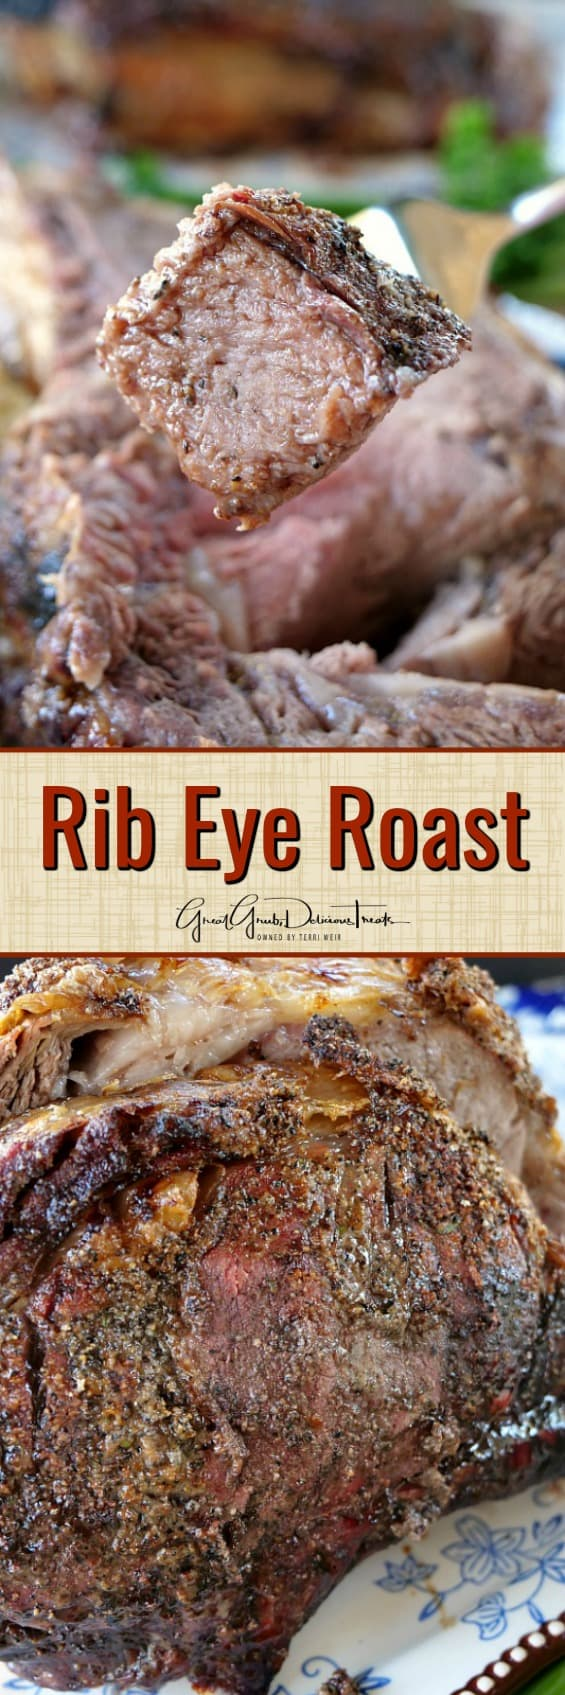 Eye Skillet Rib Steak Iron Cast